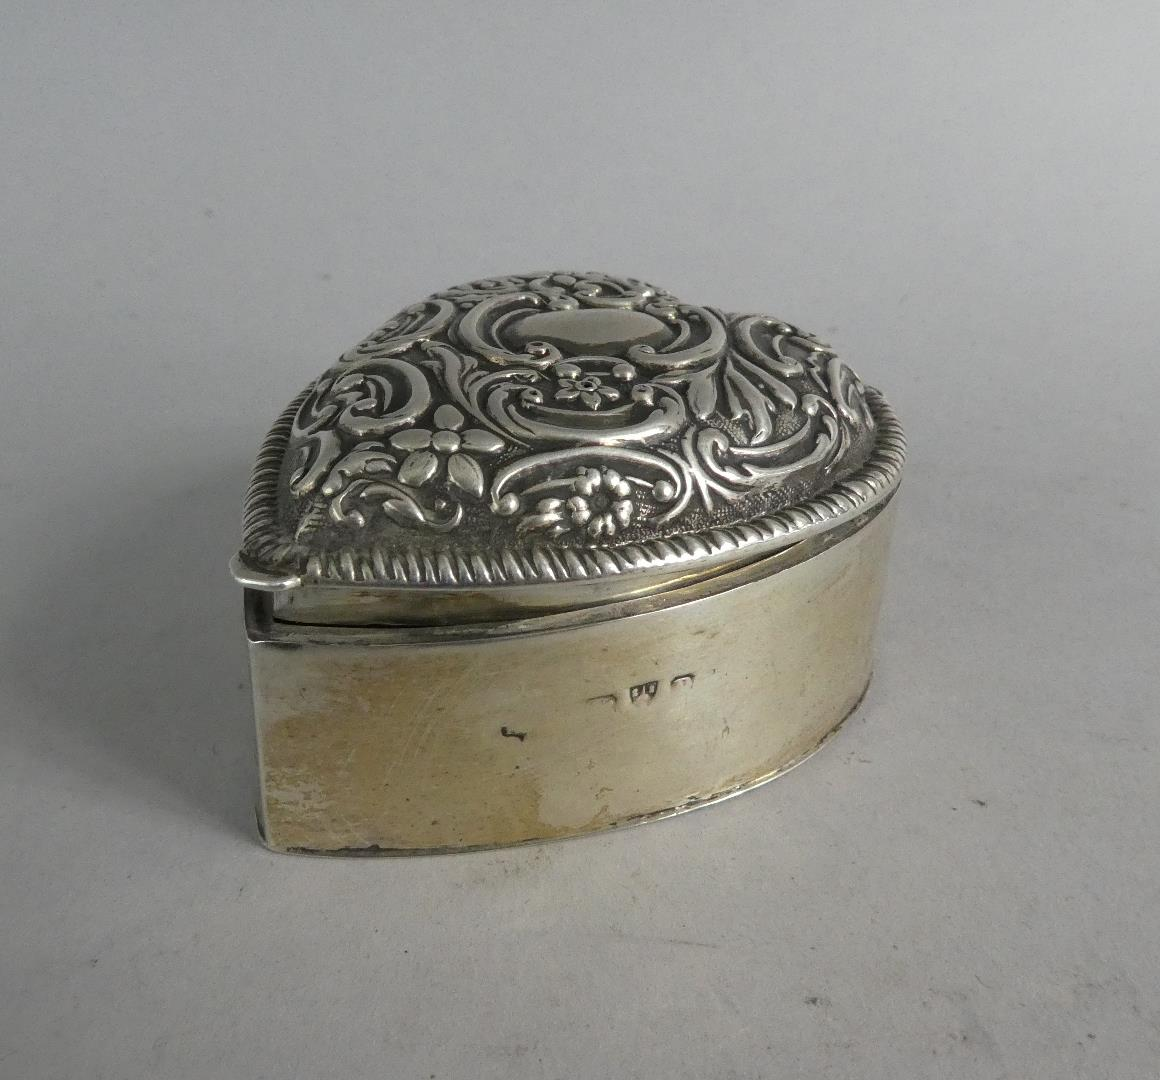 Two Heart Shaped Silver Boxes and a Silver Heart Shaped Pin Dish - Image 2 of 10